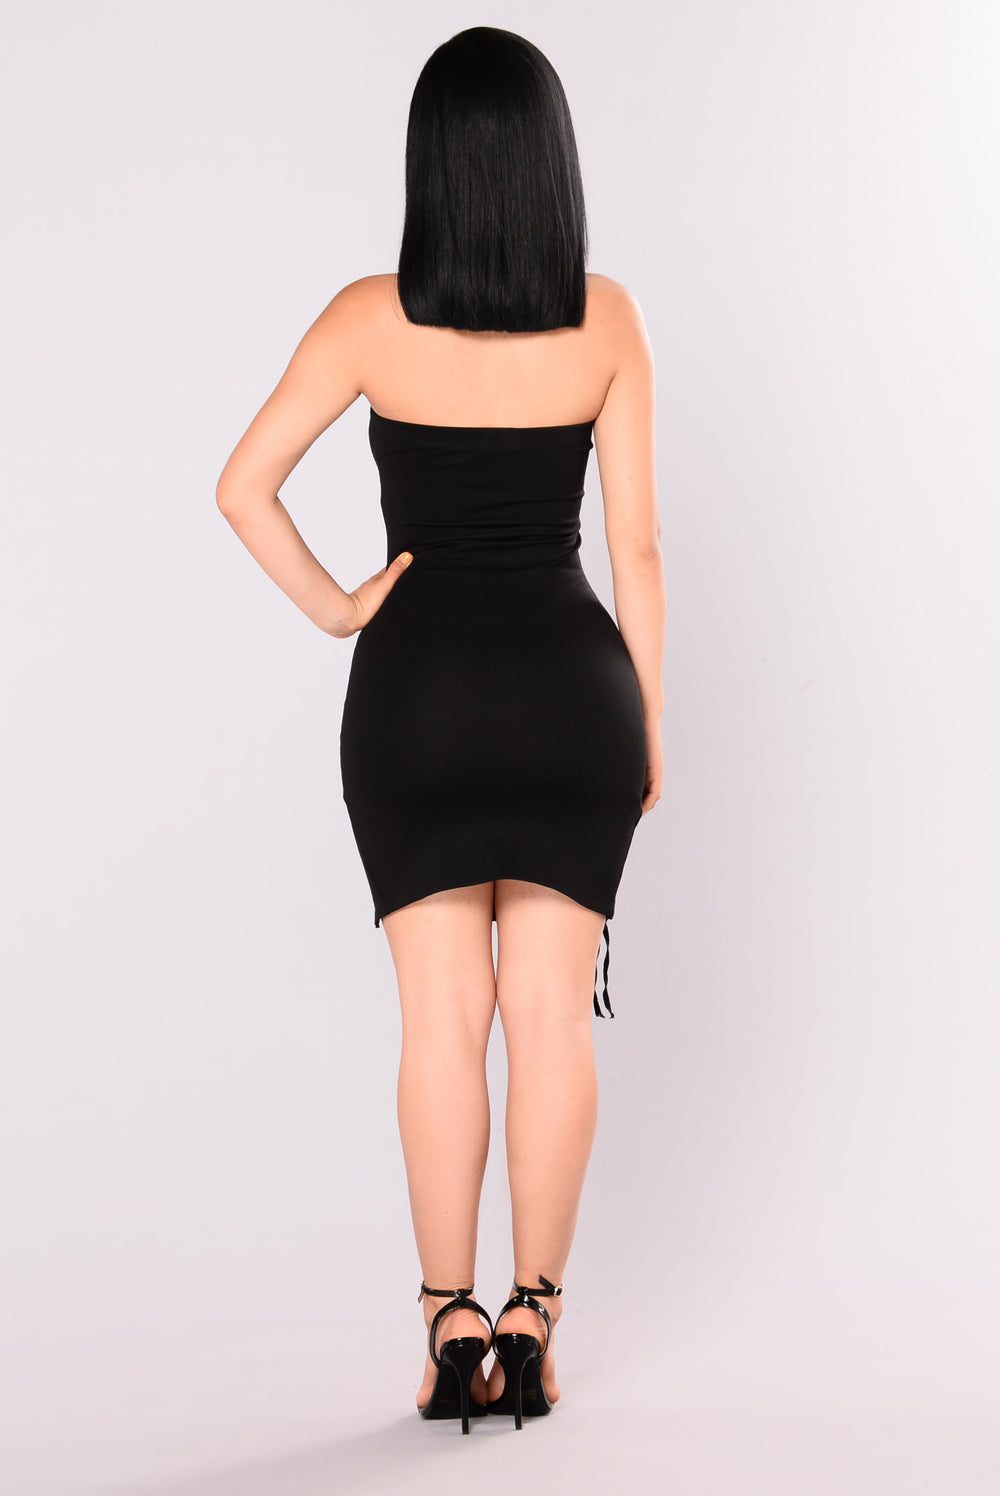 C U Later Lace Up Dress - Black